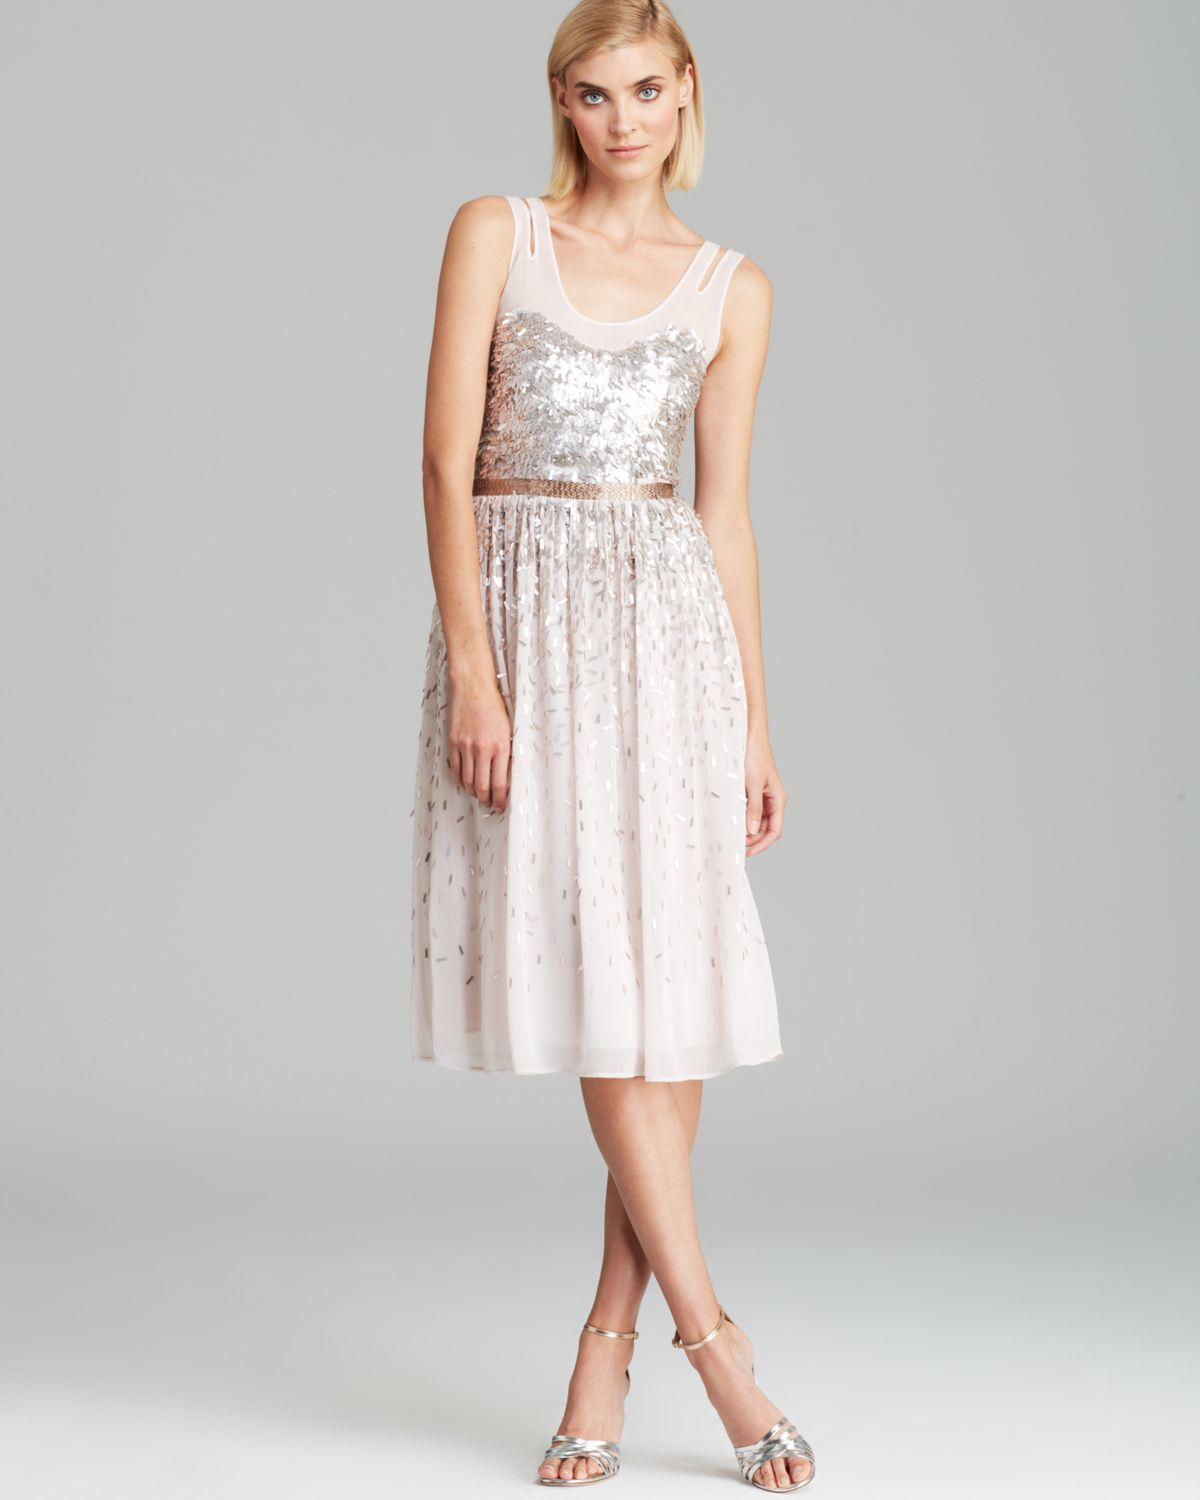 FRENCH CONNECTION Dress - Shimmer Shower | Bloomingdale's